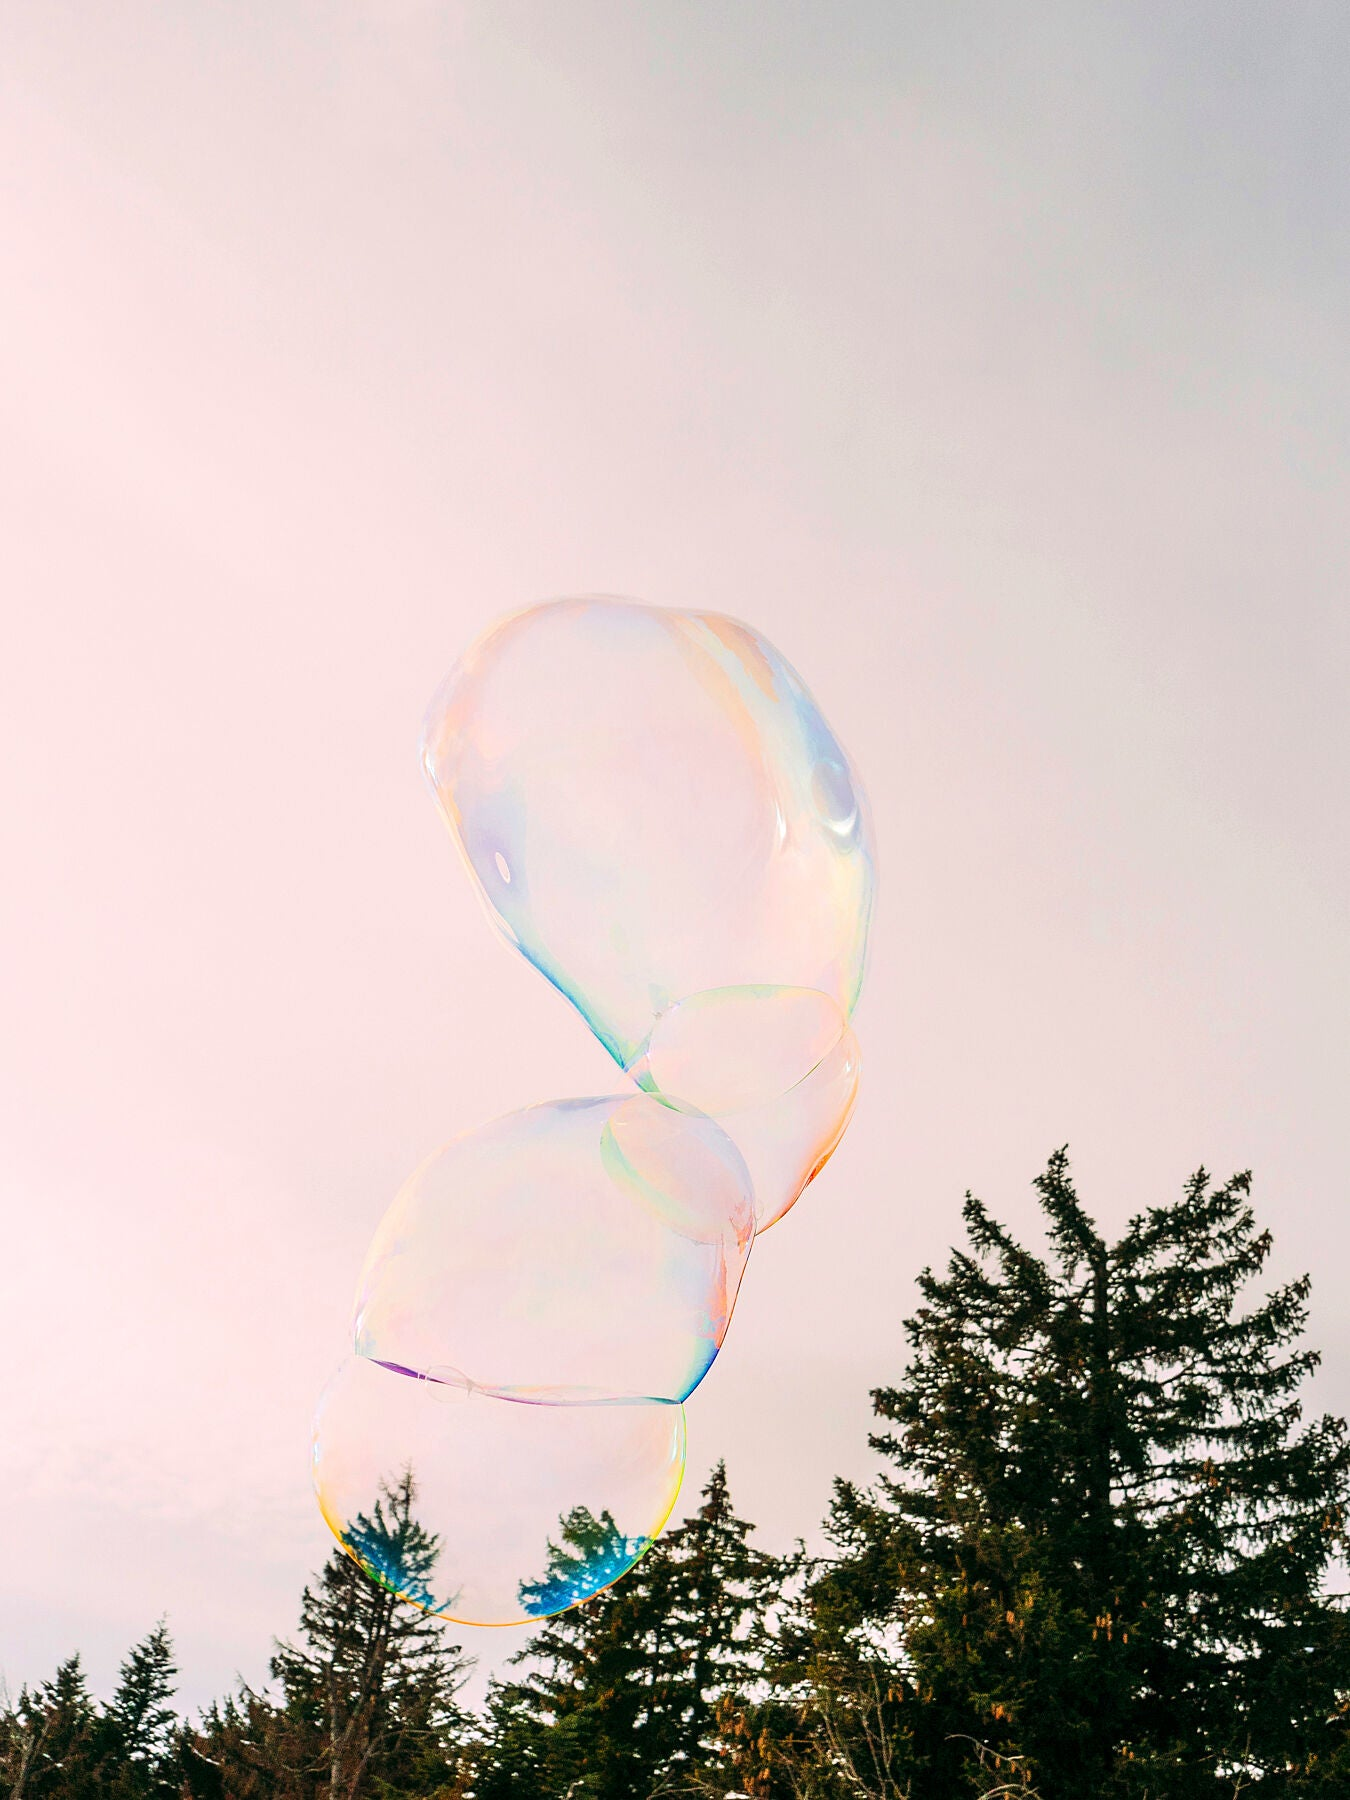 Soapbubble Studies-Hohe Wand